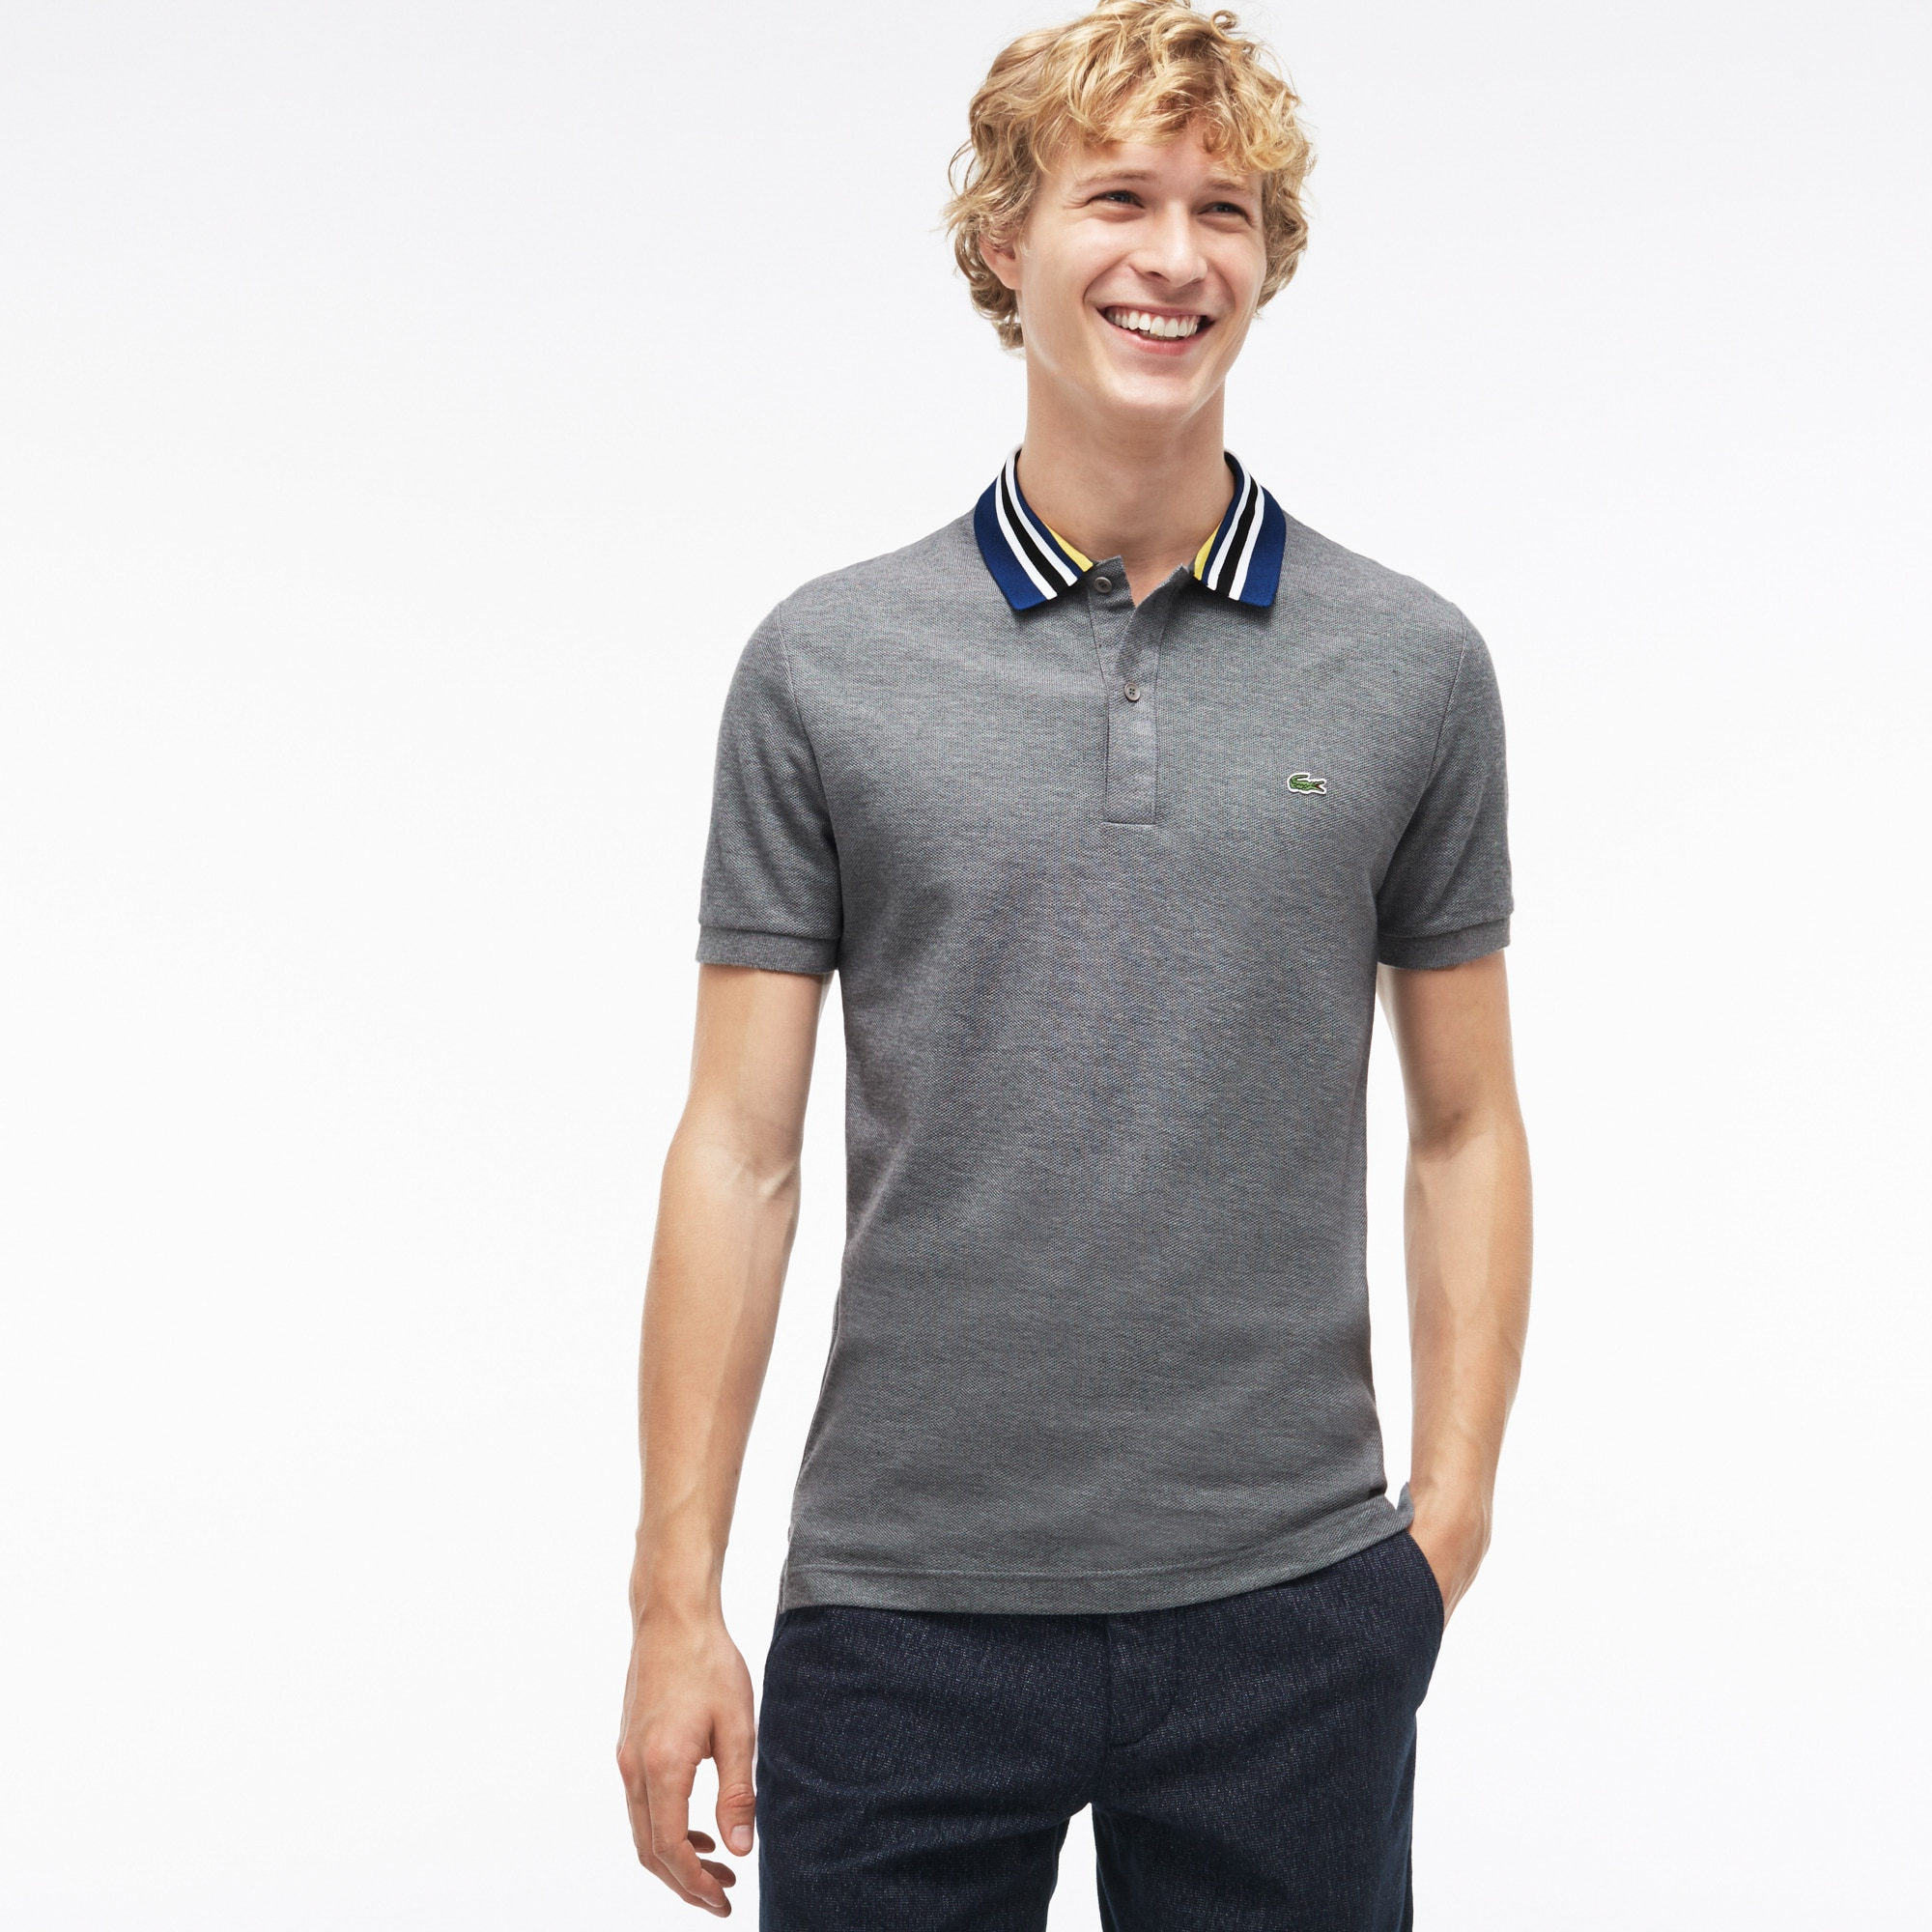 Men's  Slim Fit Cotton Piqué Polo With Piped Collar